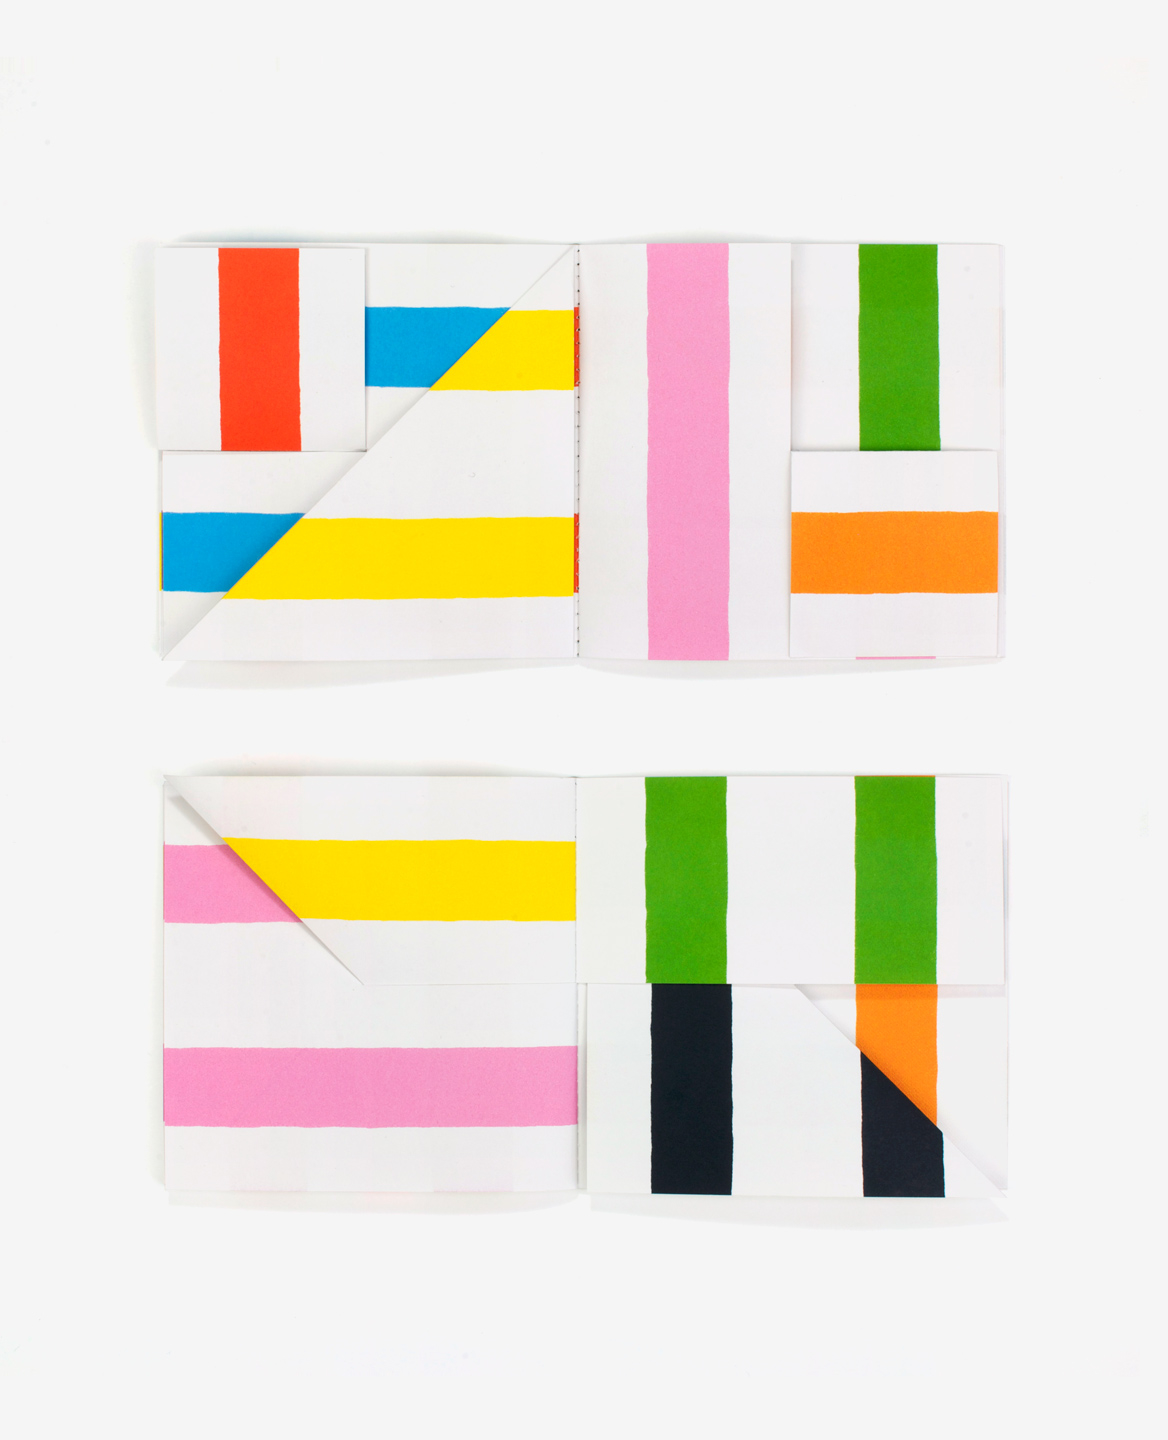 Multi colored pages of the book Lines by Antonio Ladrillo published by Éditions du livre